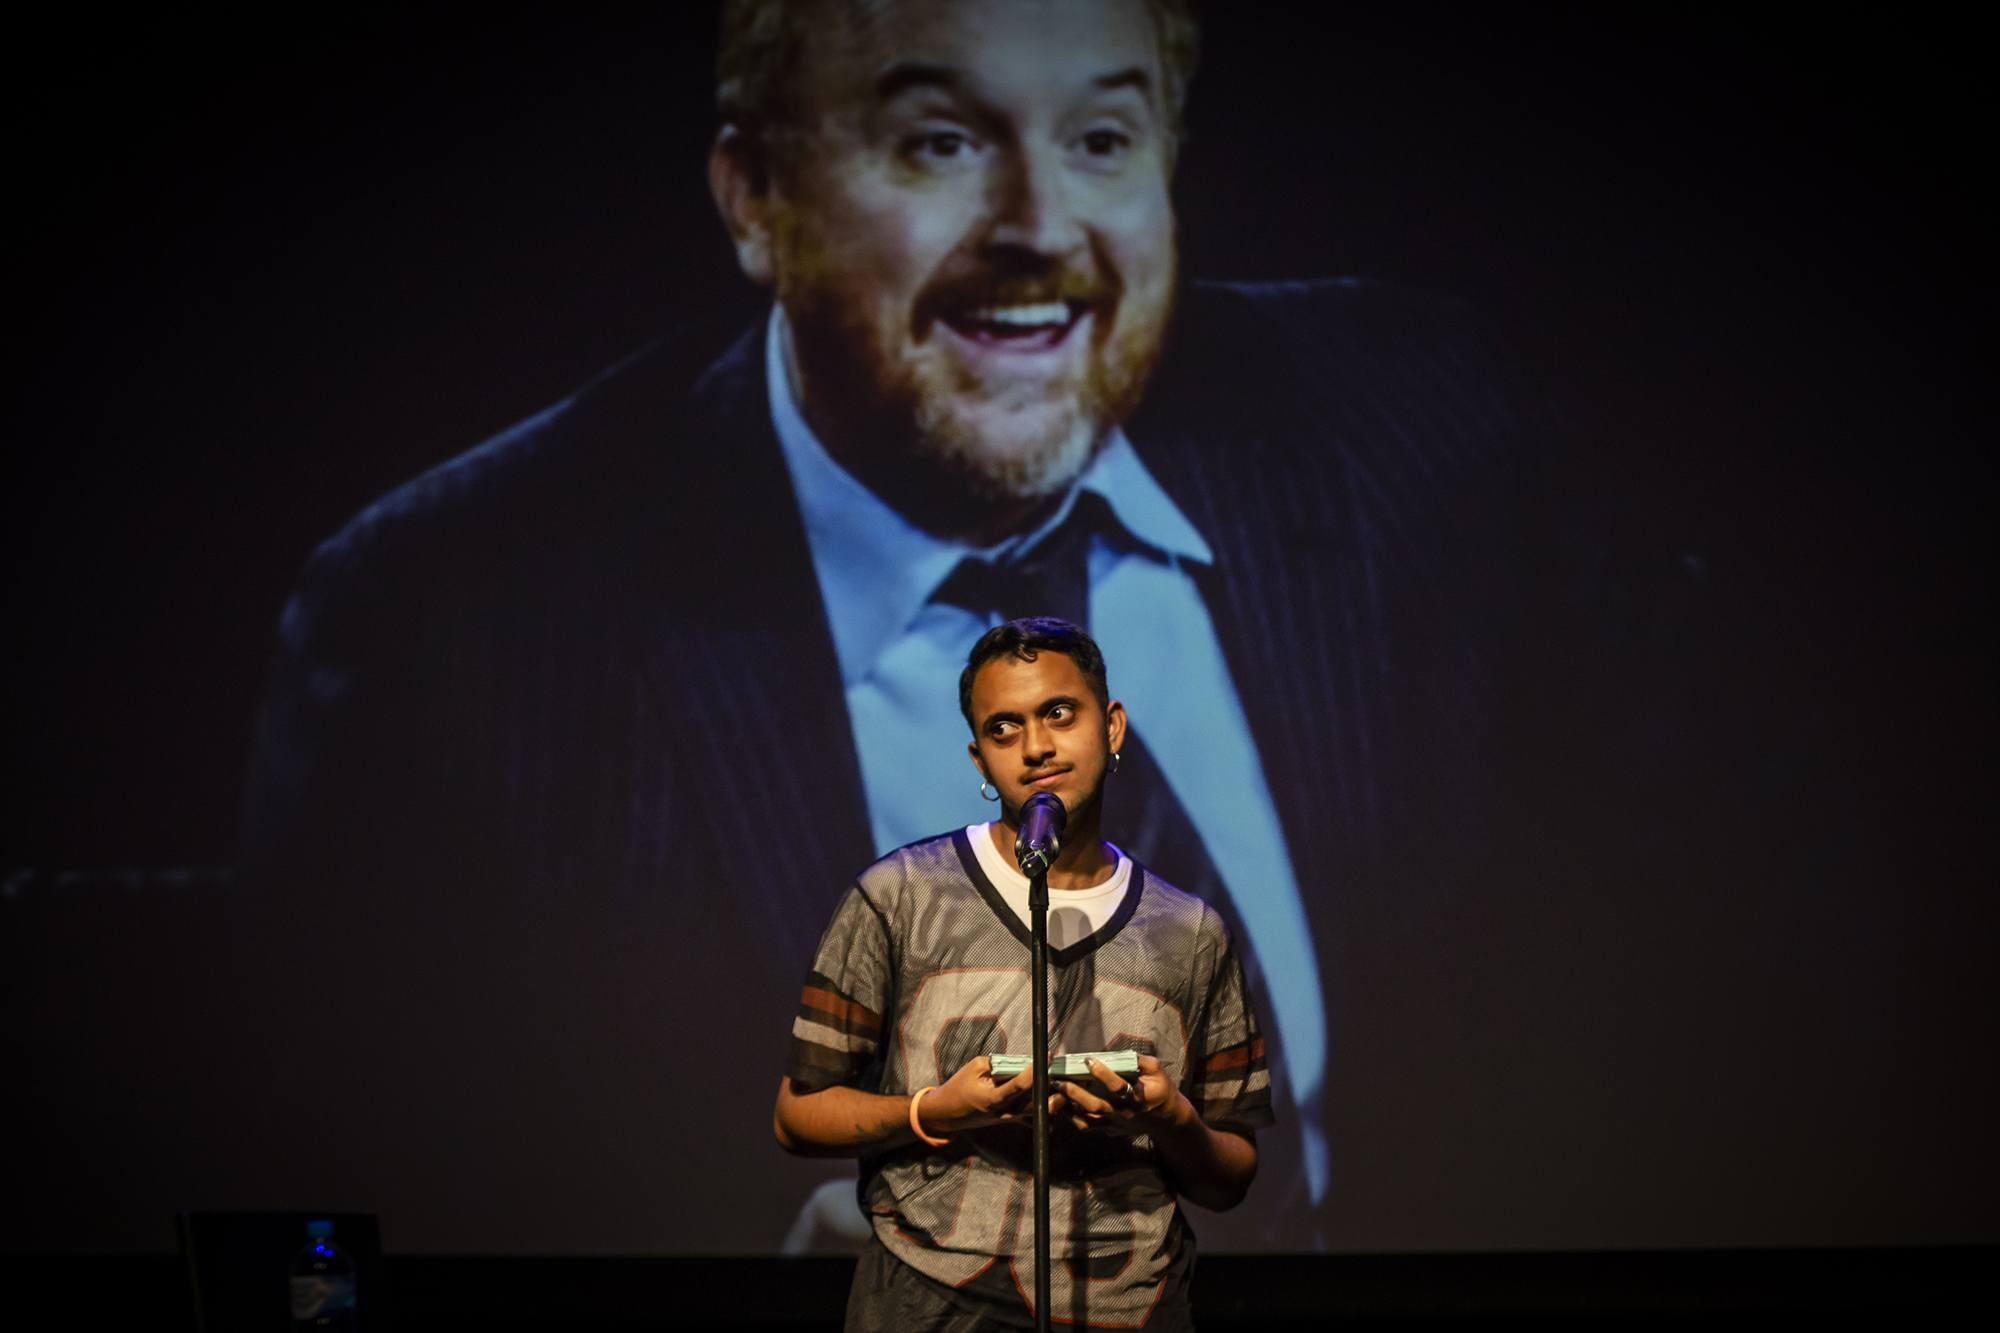 The artist speaks into a microphone as though doing a comedy set in front of an image of Louis CK.